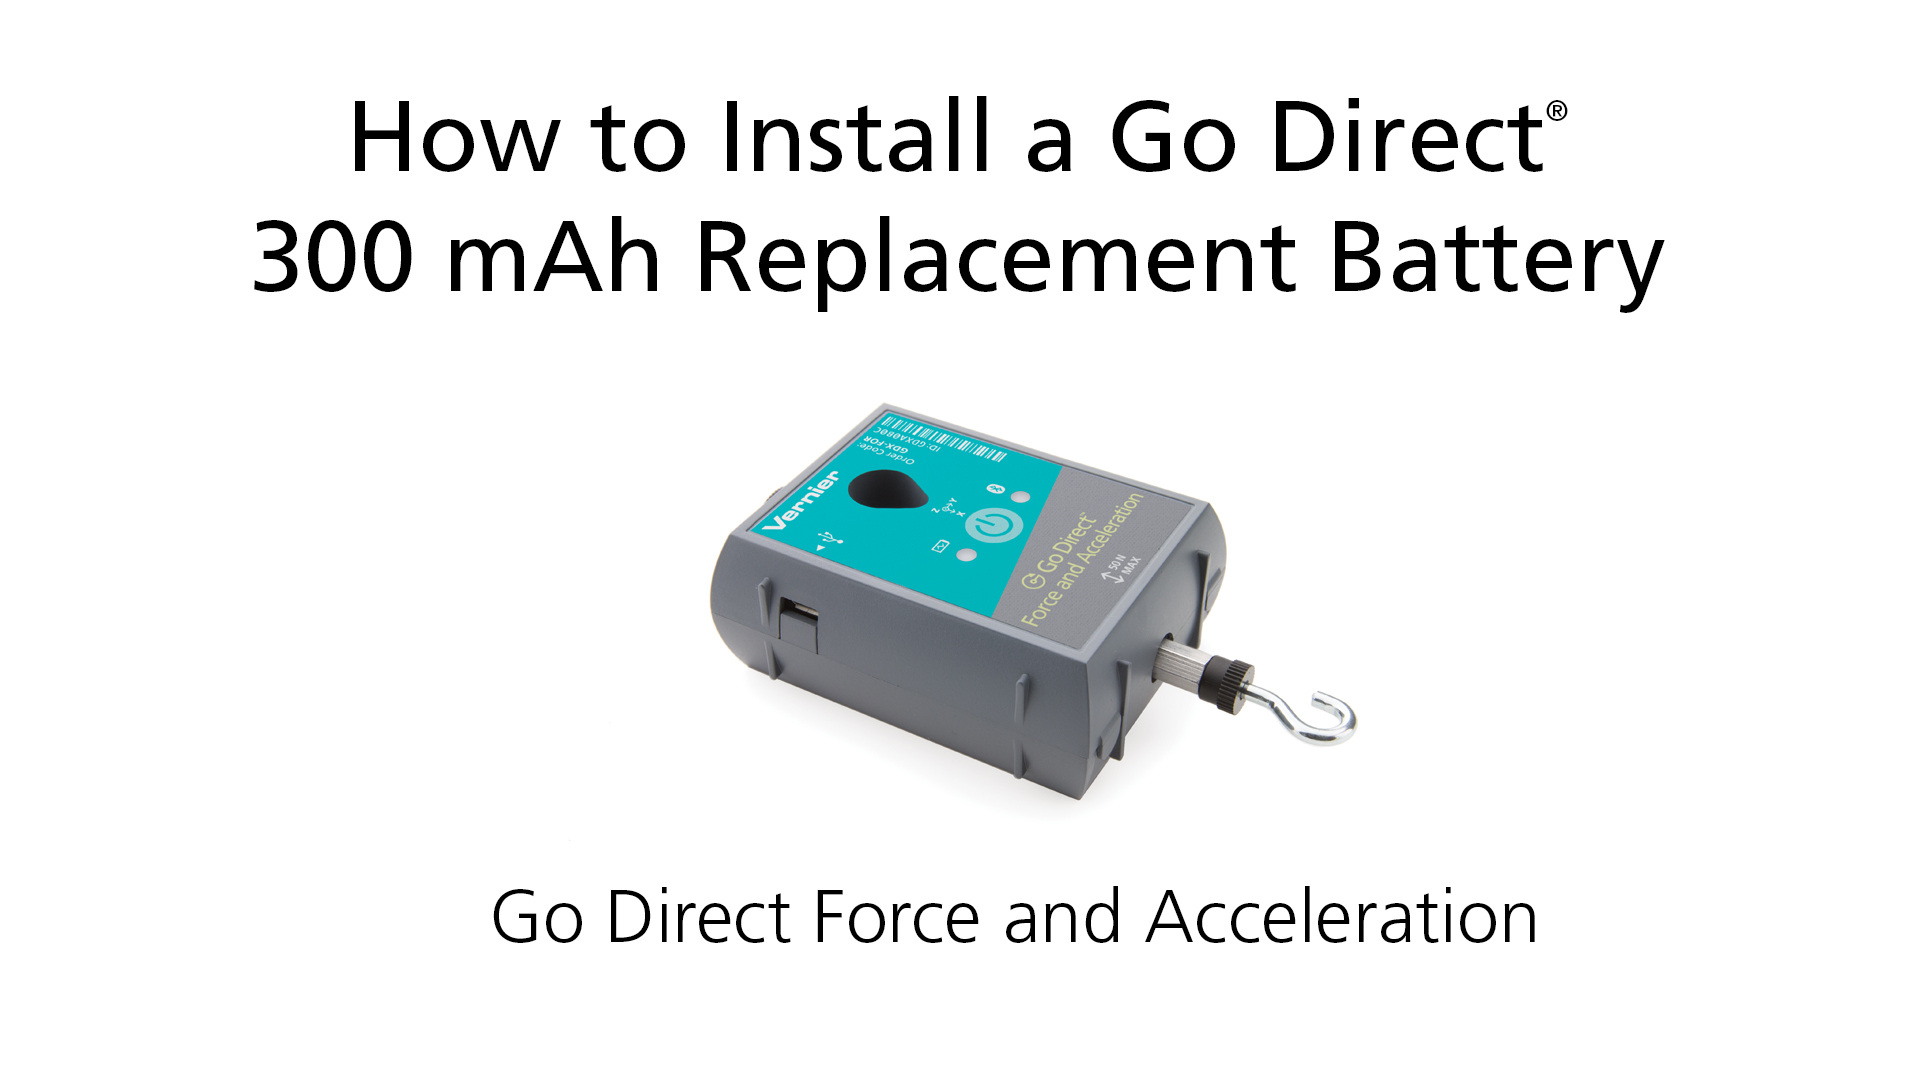 How to Install a Go Direct® 300 mAh Replacement Battery in Go Direct Force and Acceleration